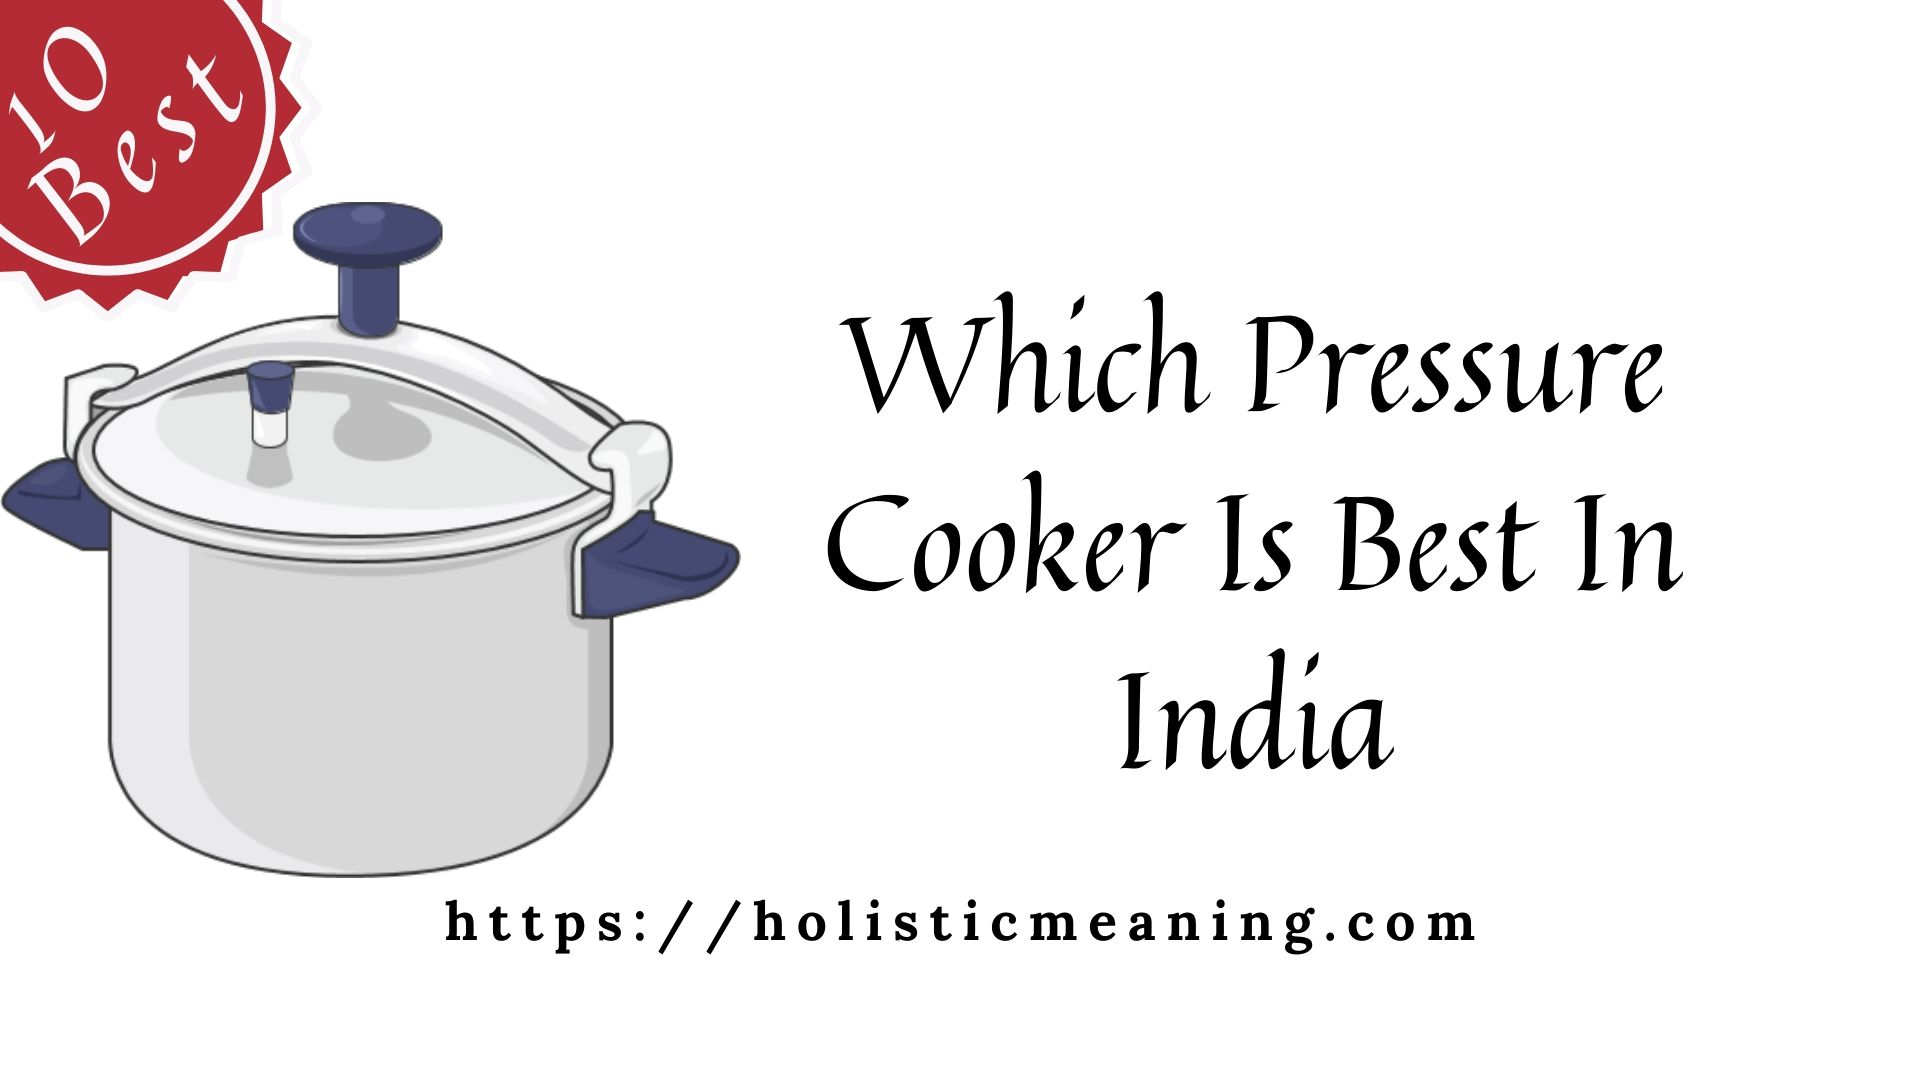 Which Pressure Cooker Is Best In India